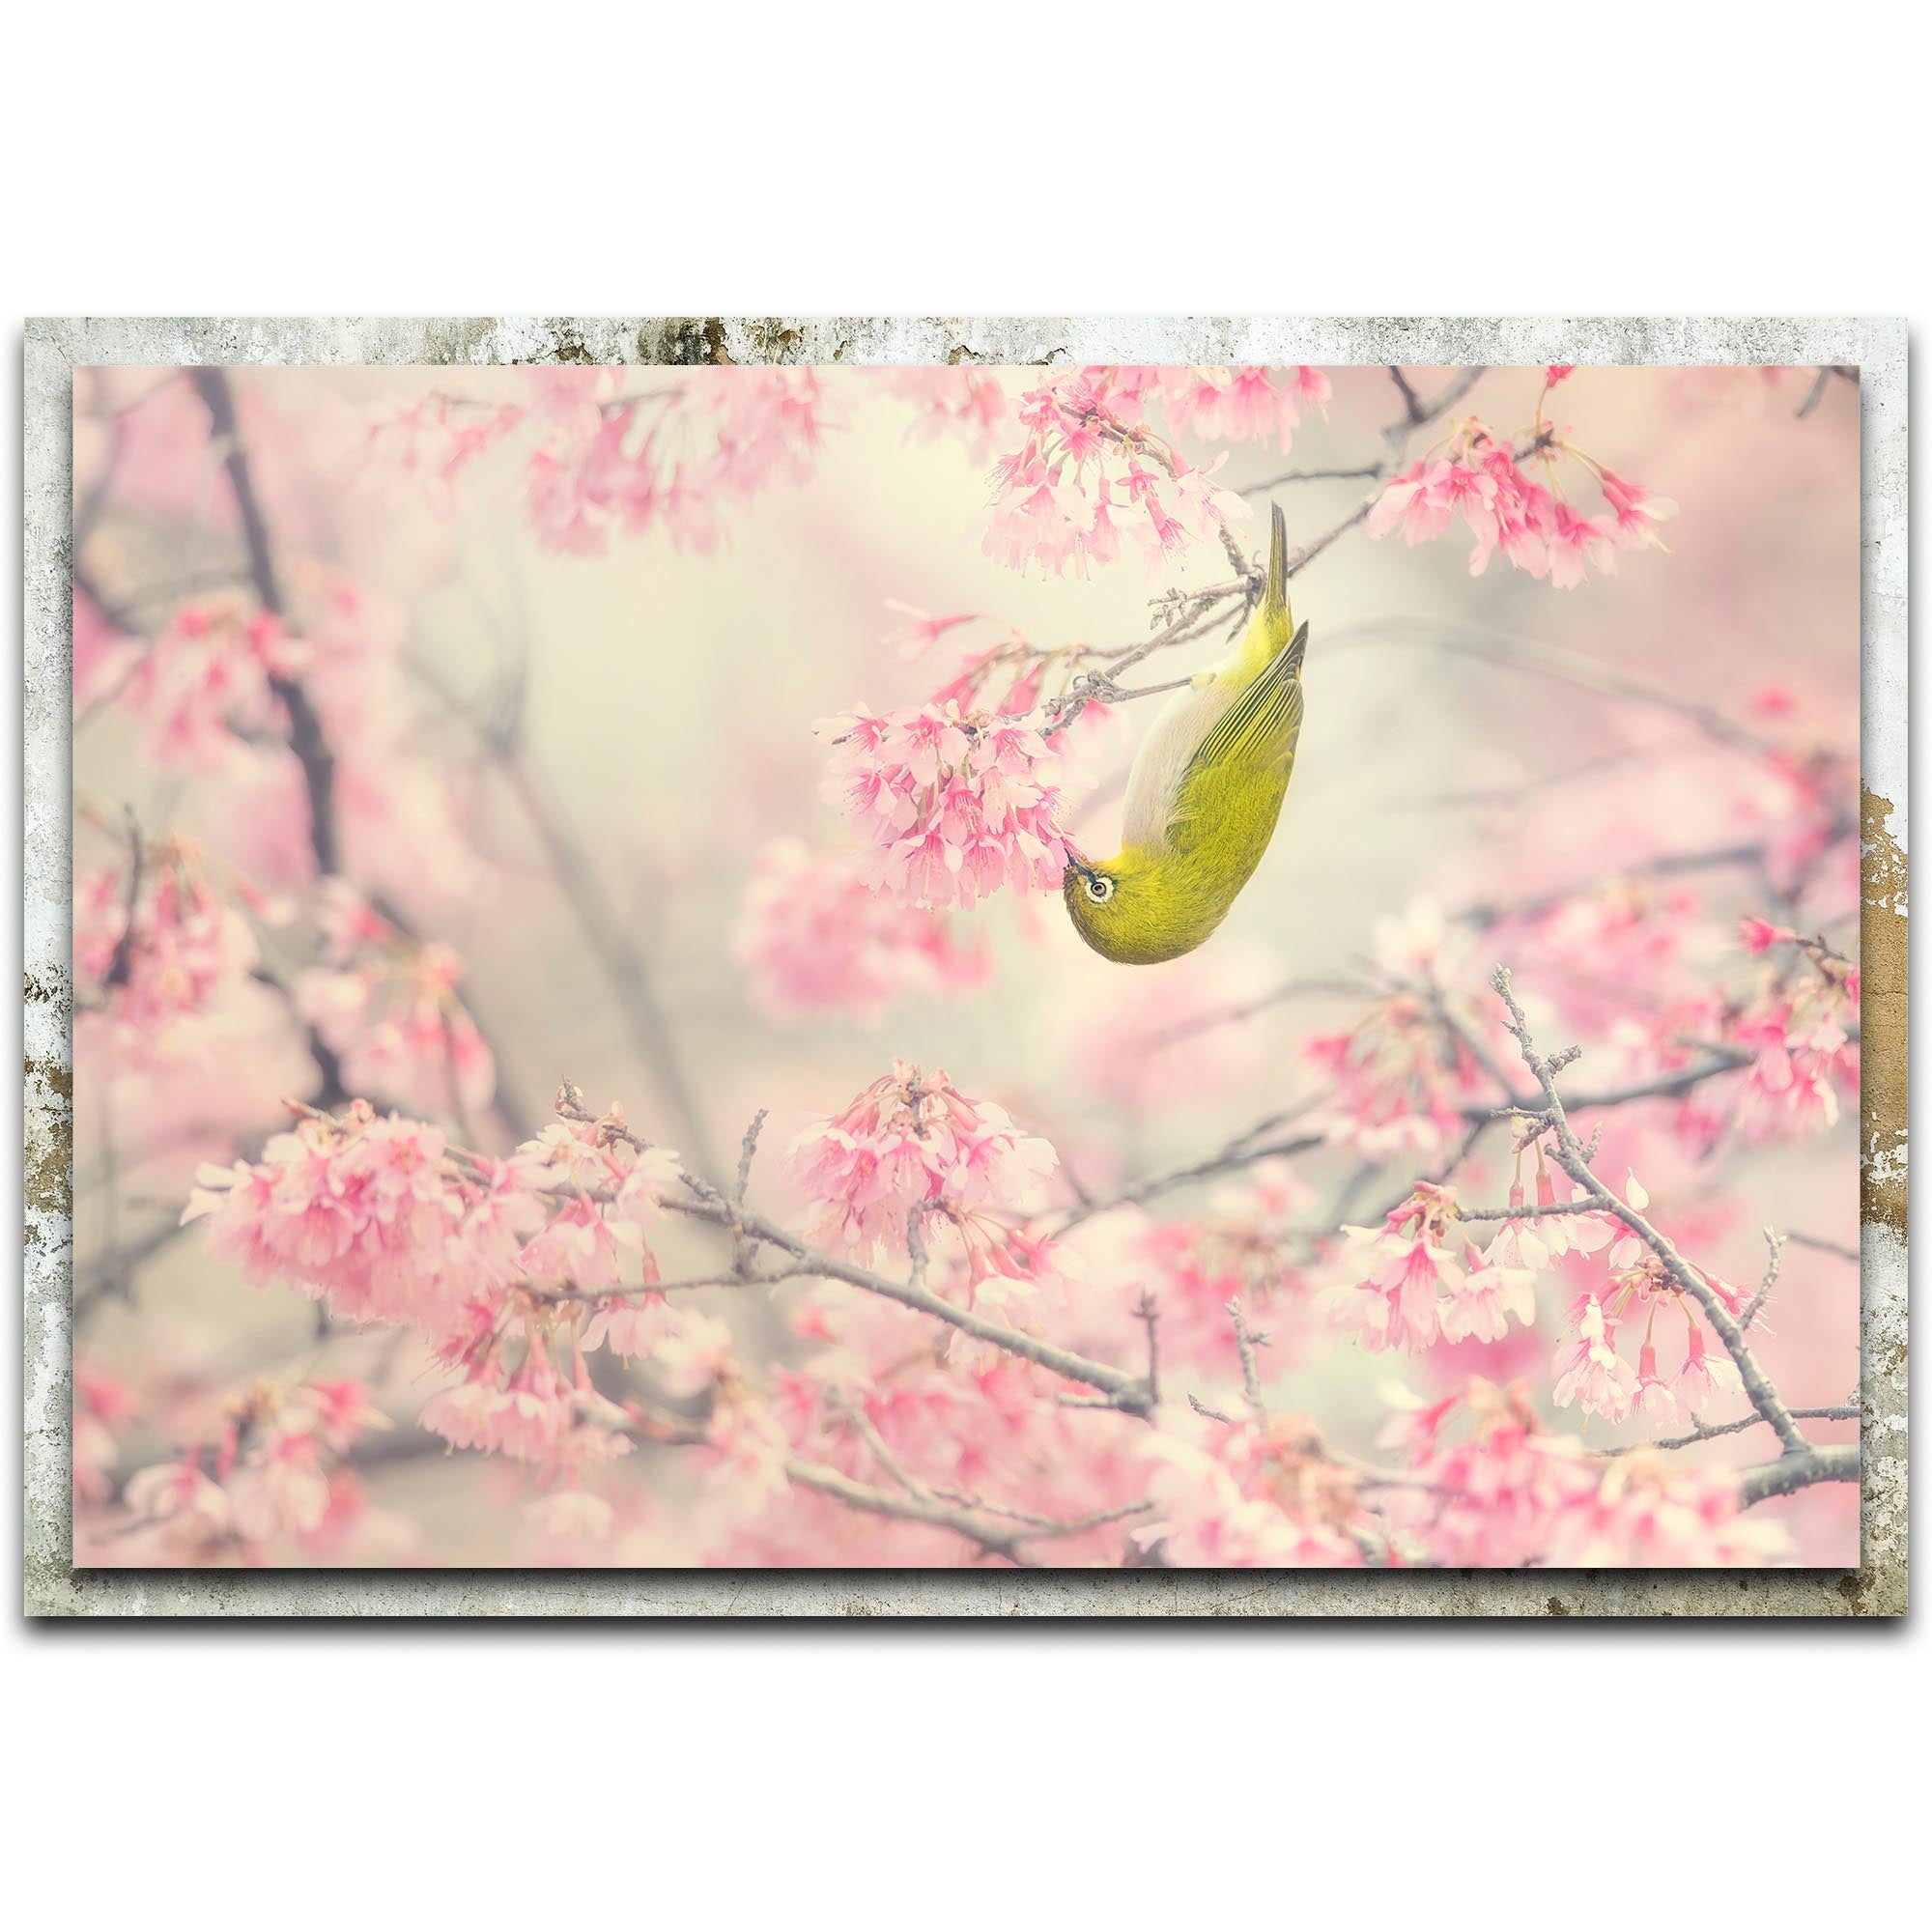 Cherry Blossom Color by Takashi Suzuki - Modern Farmhouse Floral on Metal